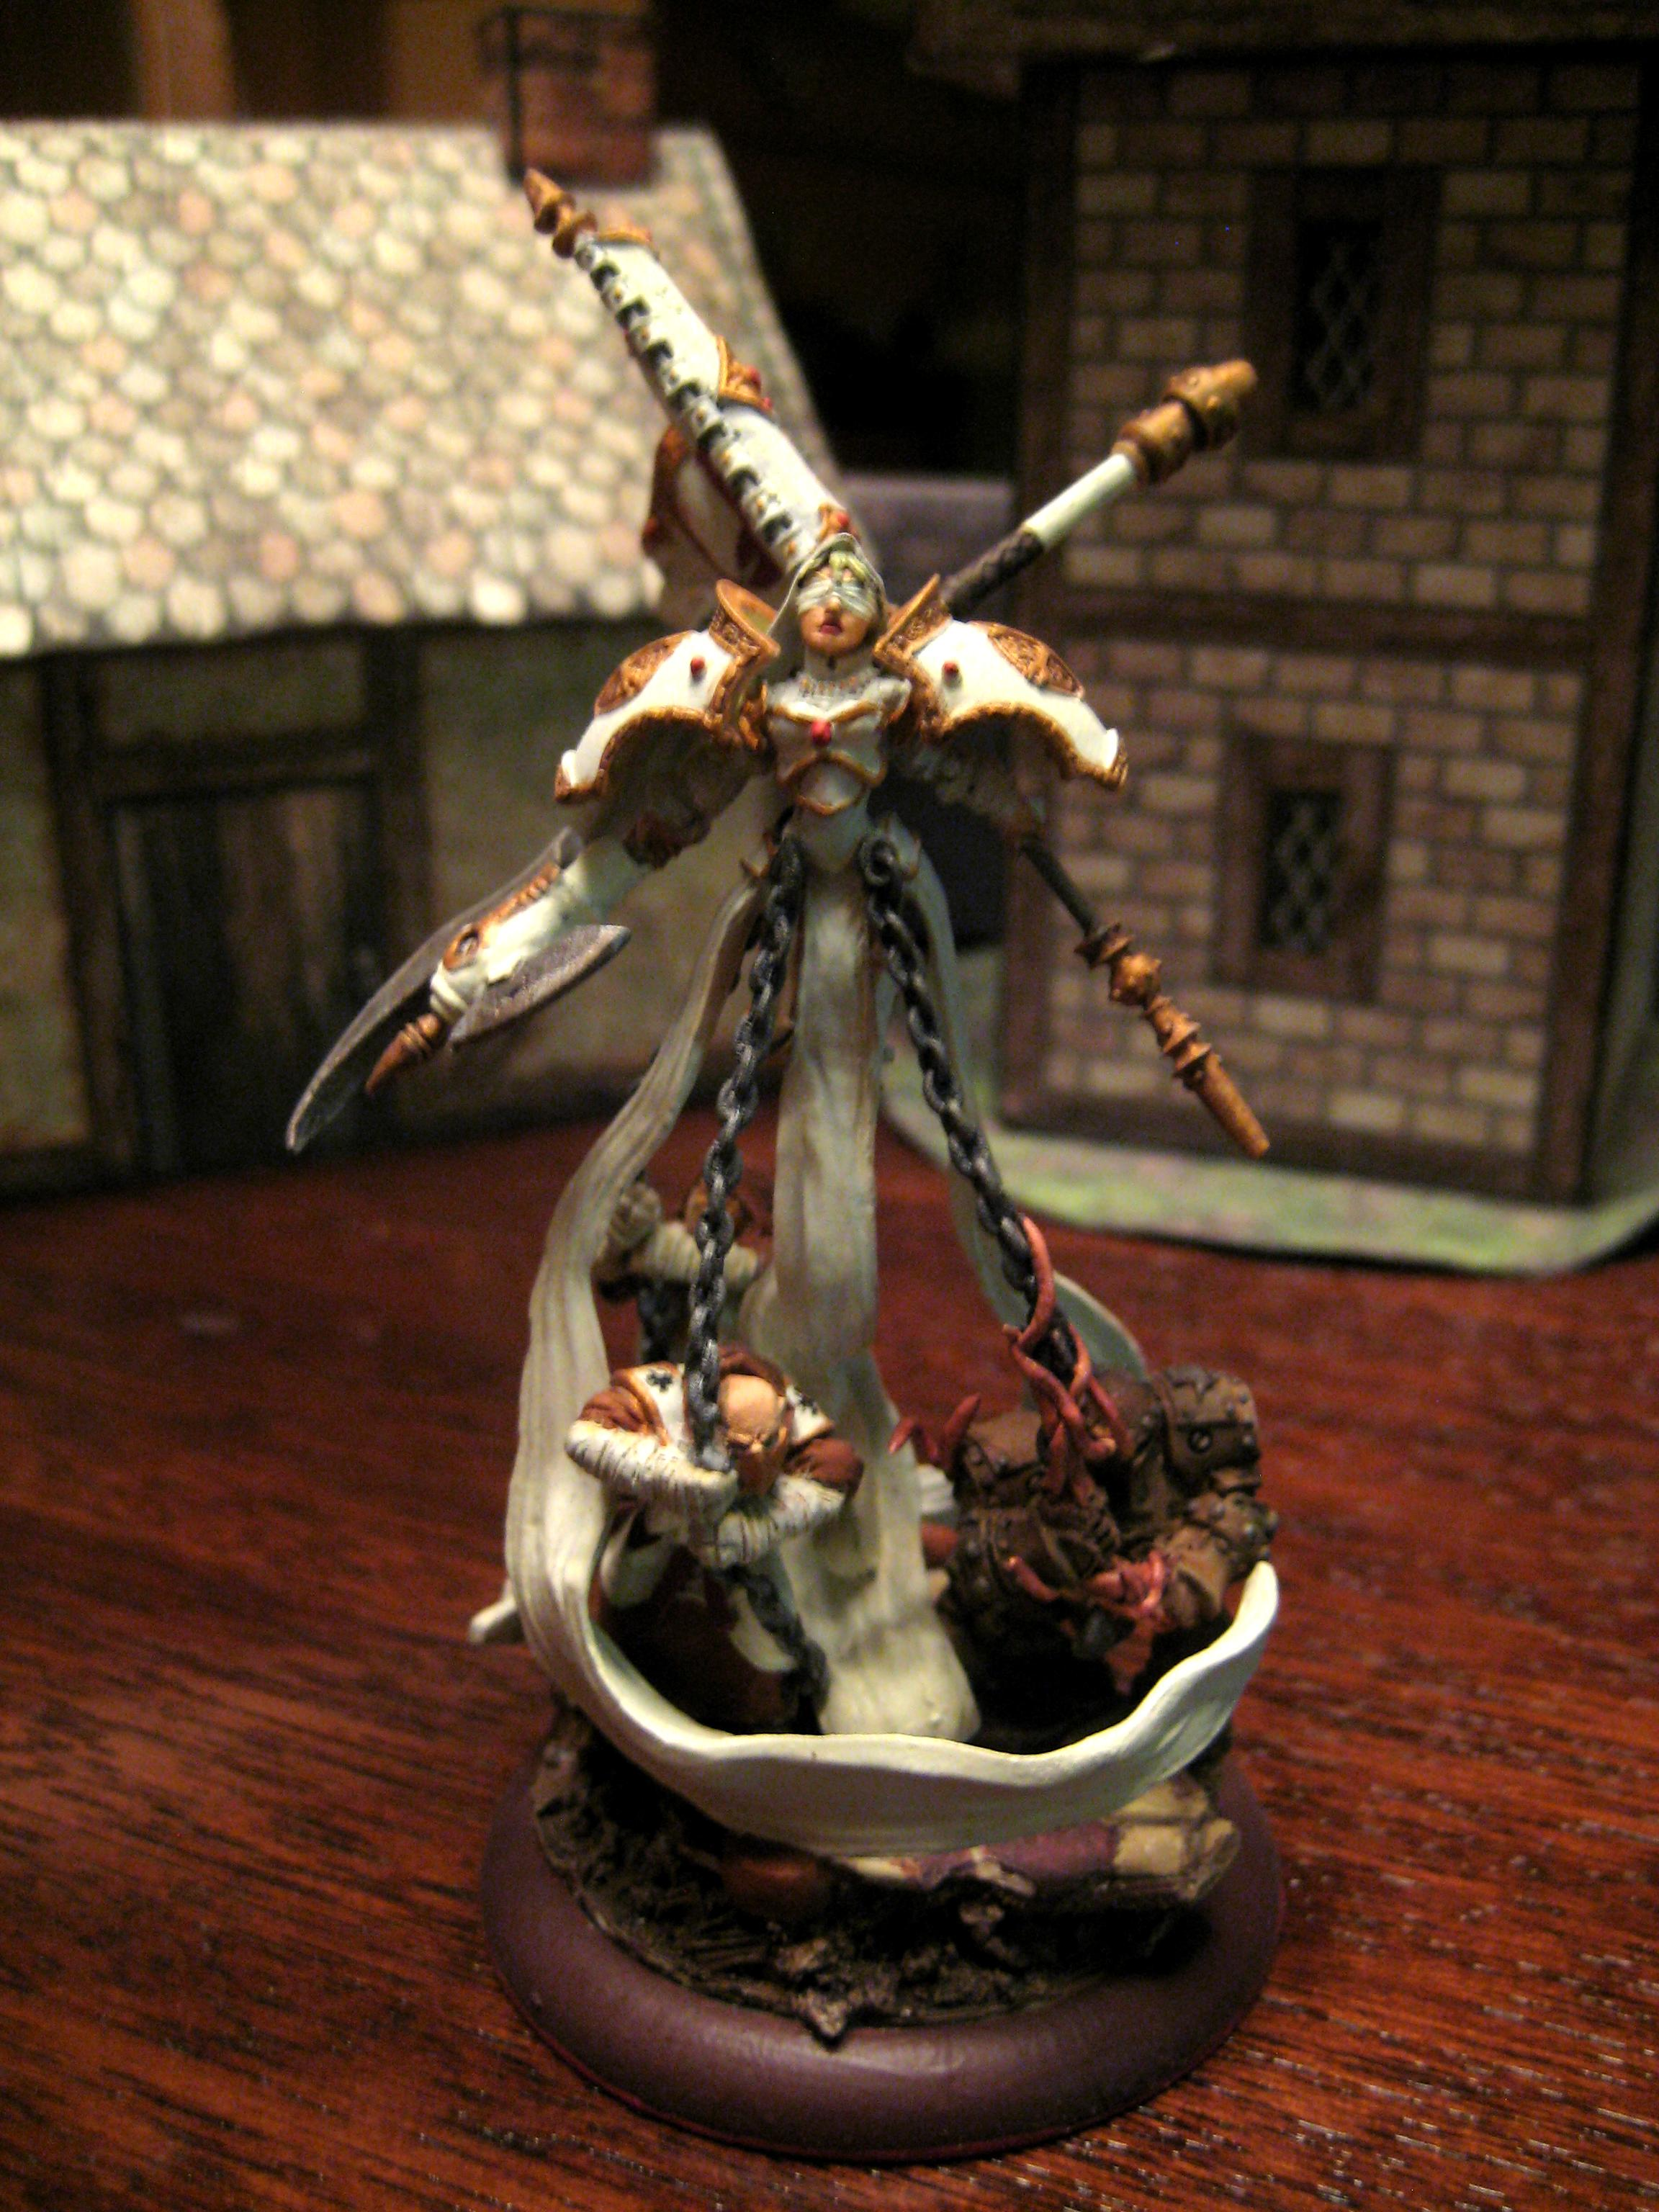 Custom Harbinger Menoth Warmachine Tentacles Sp4m, Harbinger Menoth Corrupt Horgenhold Sp4m Tentacles